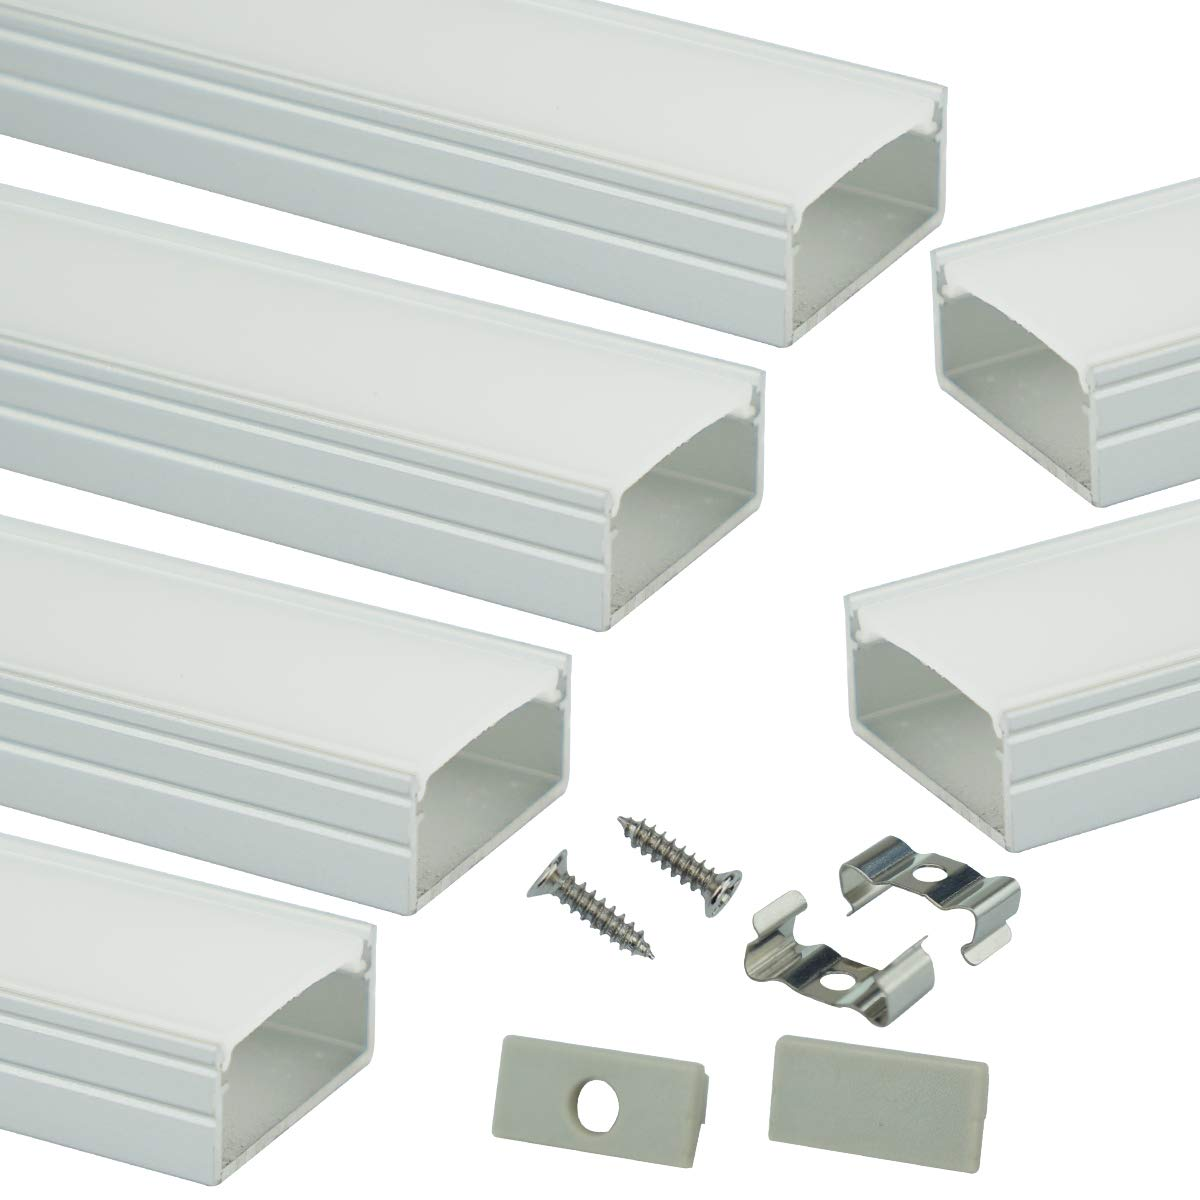 Muzata LED Channel System with Milky White Cover,16mm Super Wide Aluminum Extrusion Profile Track Diffuser for Tape Strip Light Philips Hue Plus with Video Guide,U Shape,6Pack 3.3Ft/1M U102